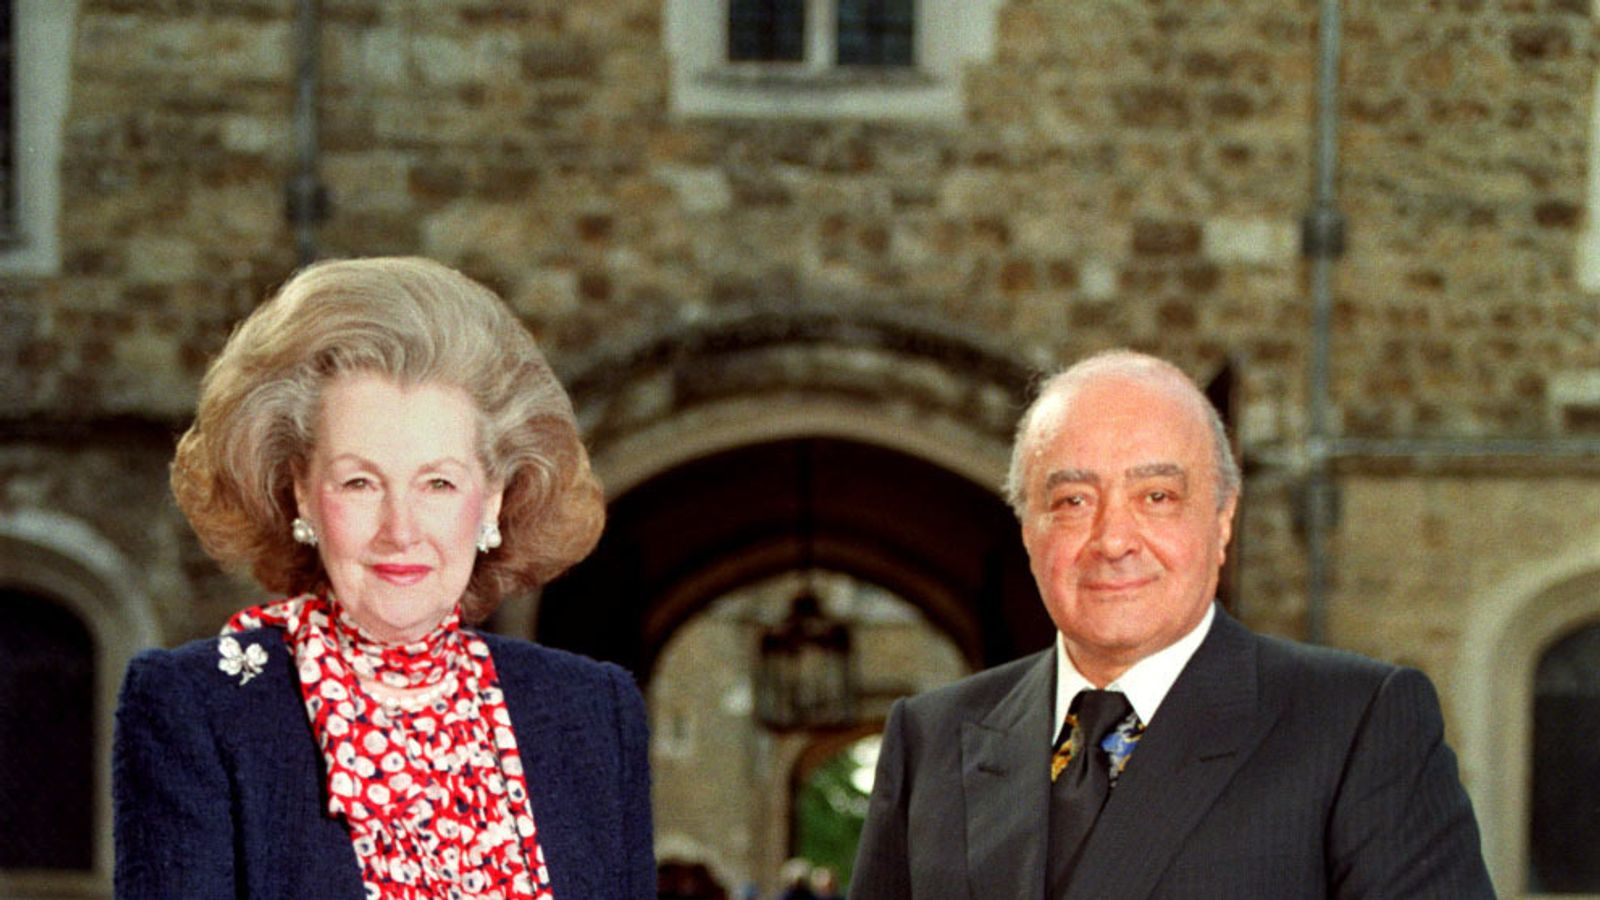 Princess Diana's stepmother Raine Spencer dies, aged 87